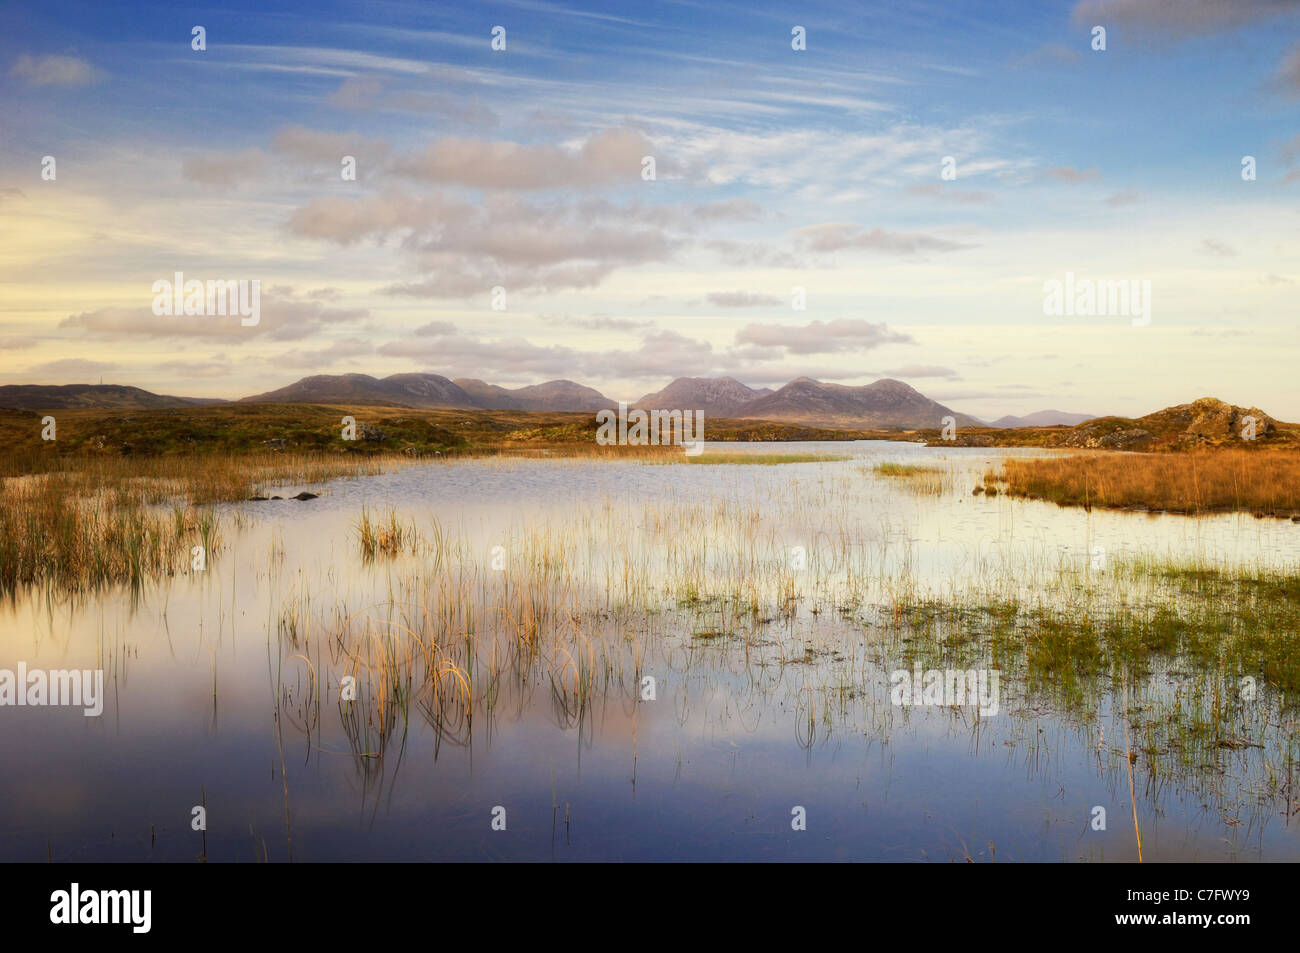 Bog landscape with the 12 Bens mountain range in the background - Connemara, County Galway, Ireland - Stock Image